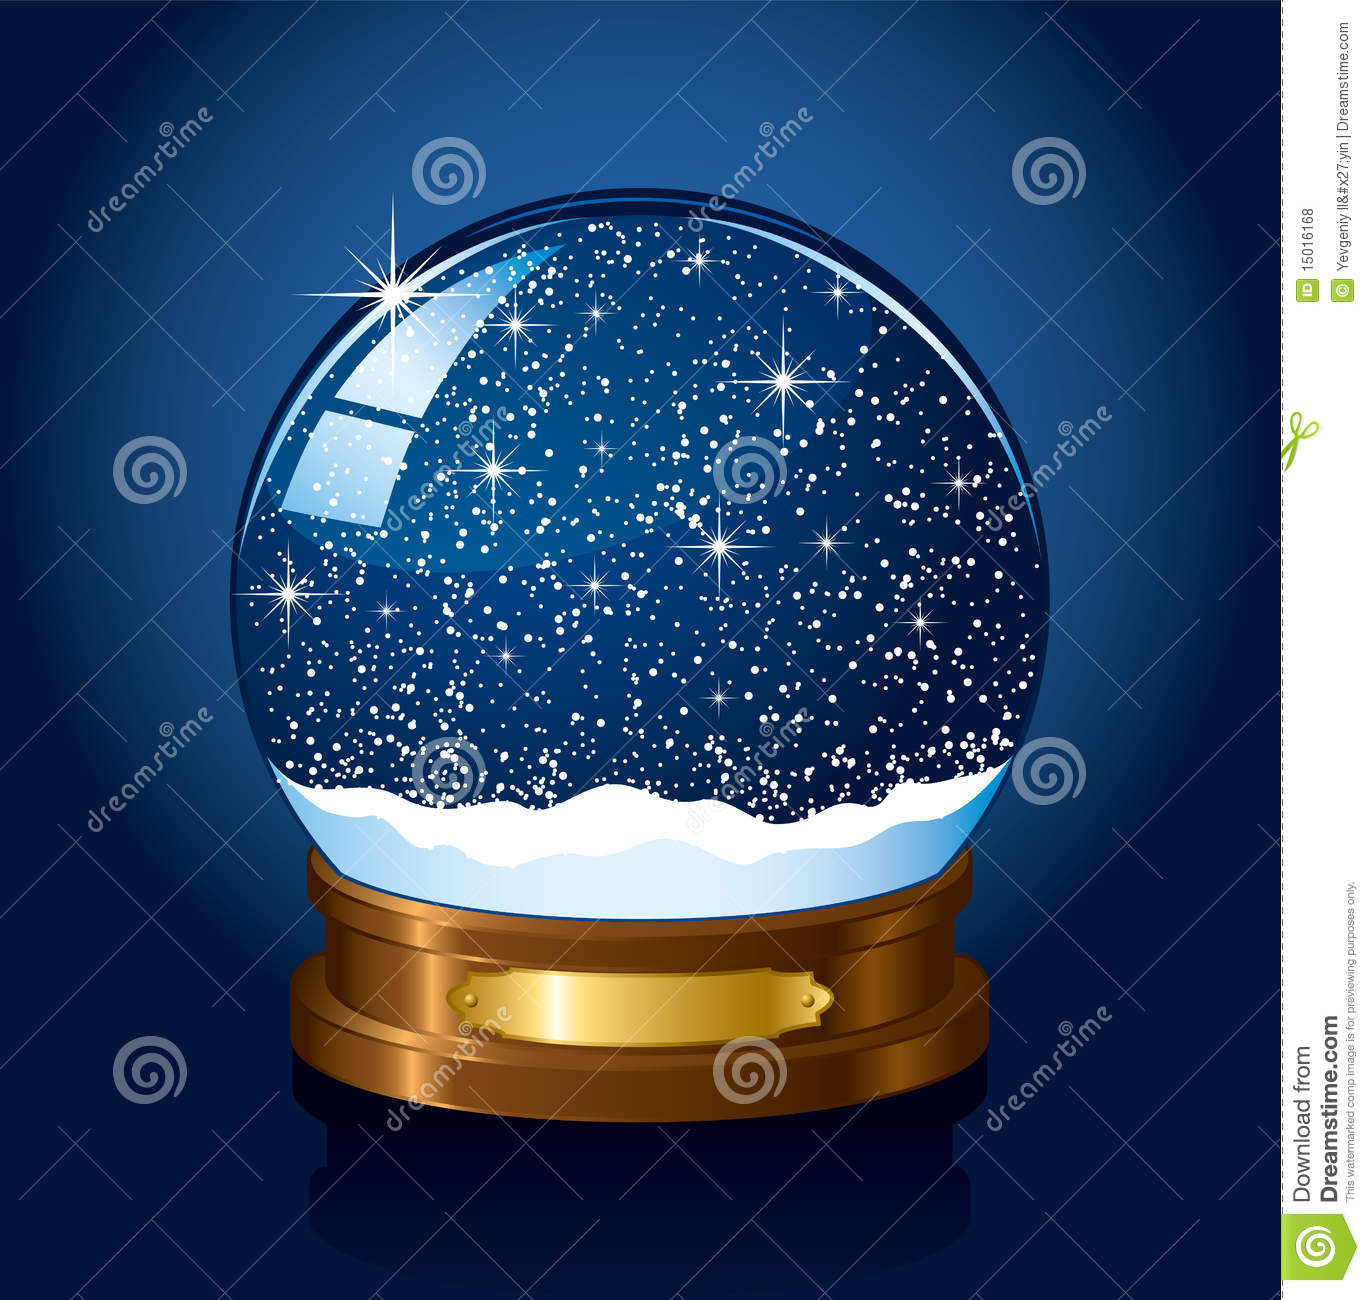 Free Download Snow Falling Animated Wallpaper Christmas Snow Globe Stock Vector Illustration Of Gold